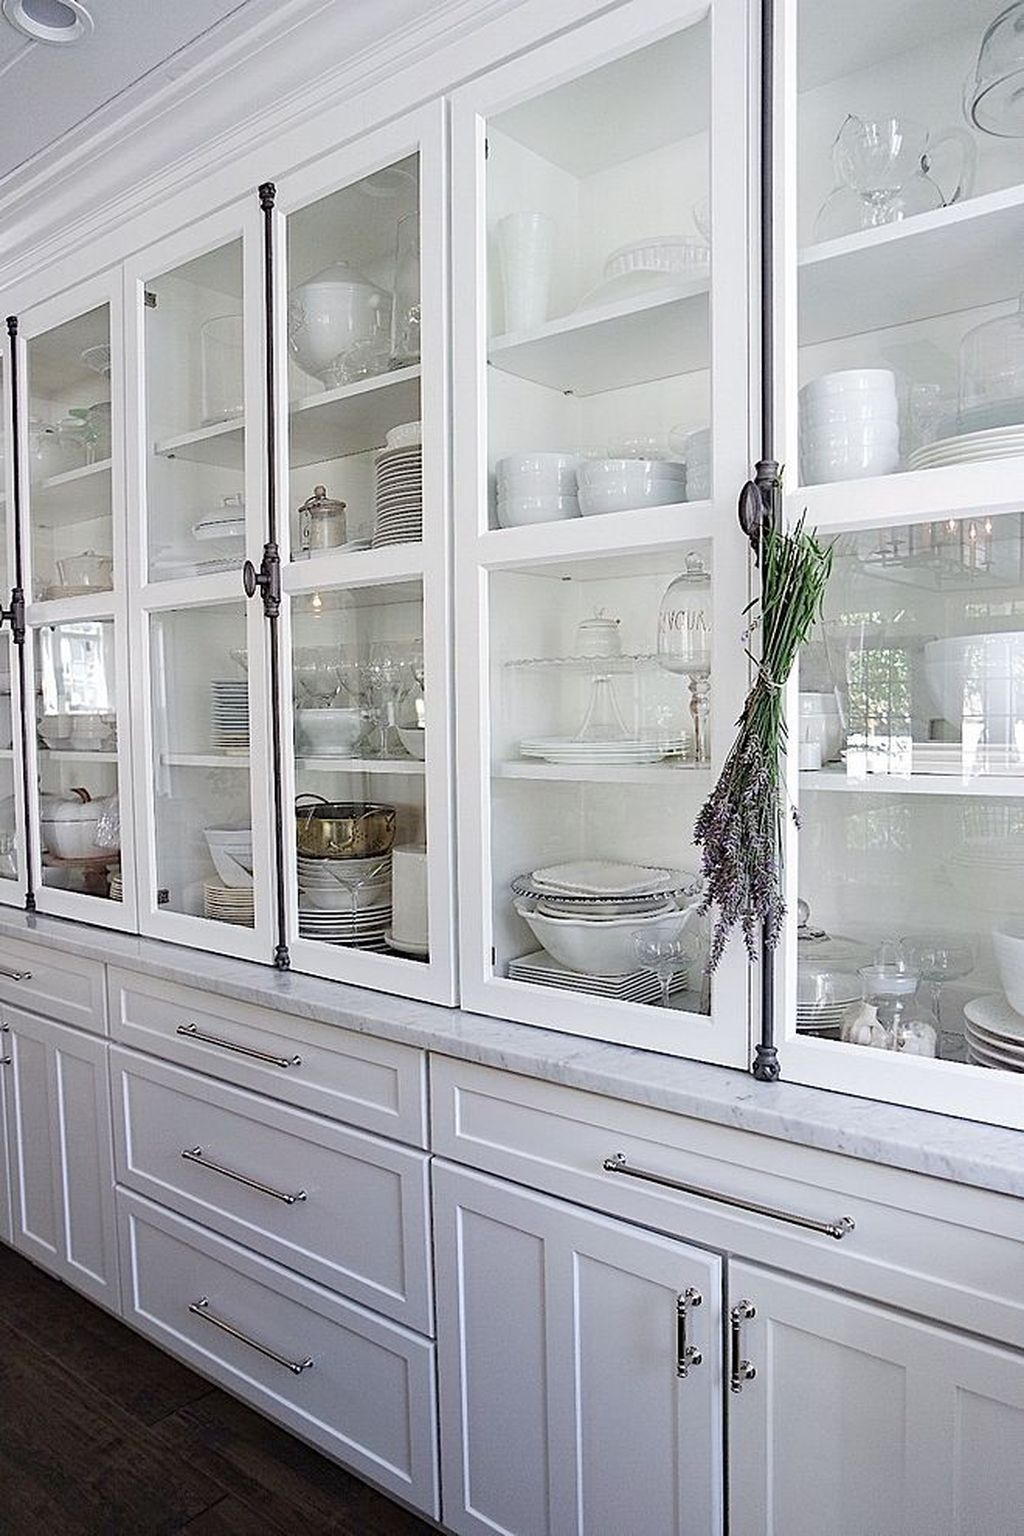 20 Enchanting Cabinets Design Ideas To Save Your Goods Glass